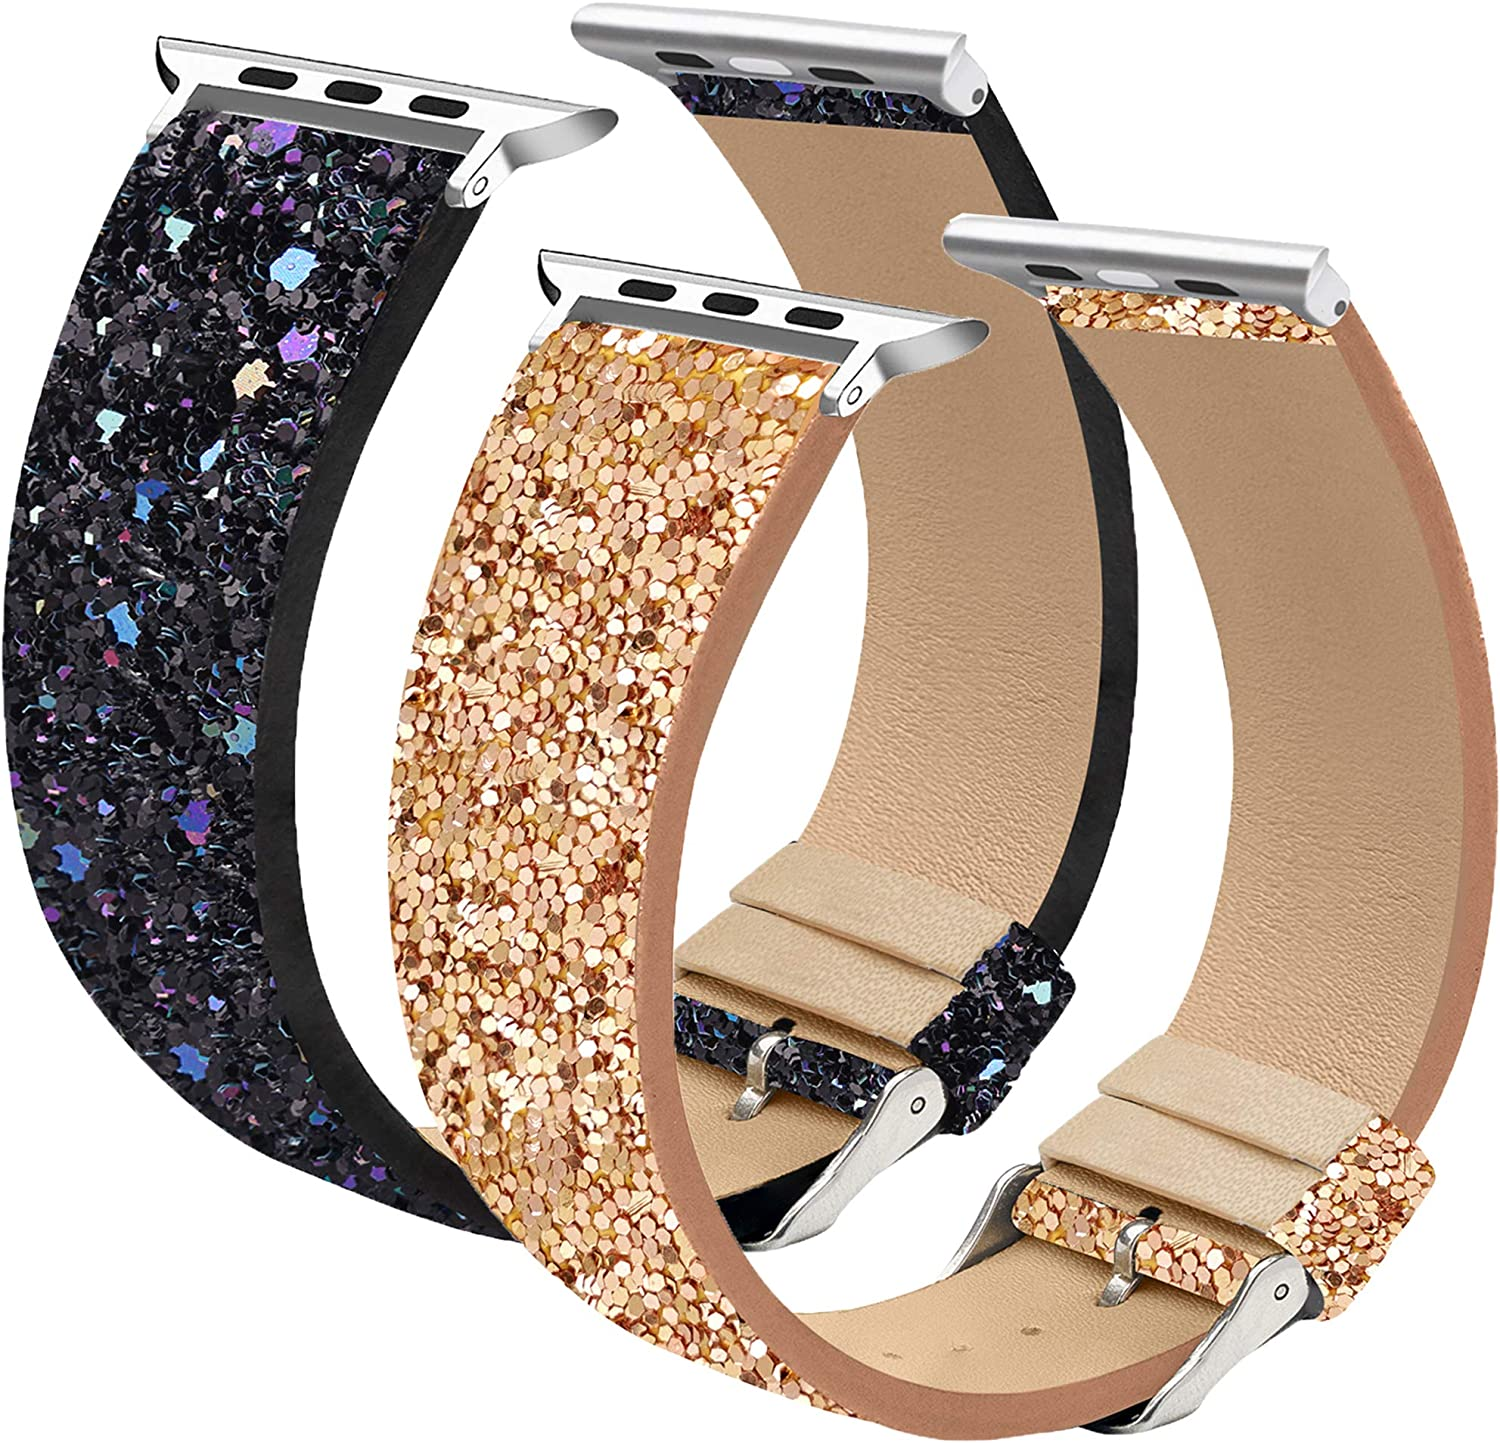 2 Pack Shiny Wrist Straps Replacement Compatible with iWatch Series 6, Series SE, Series 5, Series 4, Series 3, Series 2, Series 1, Glitter Watch Band Compatible with Apple Watch 42mm 44mm